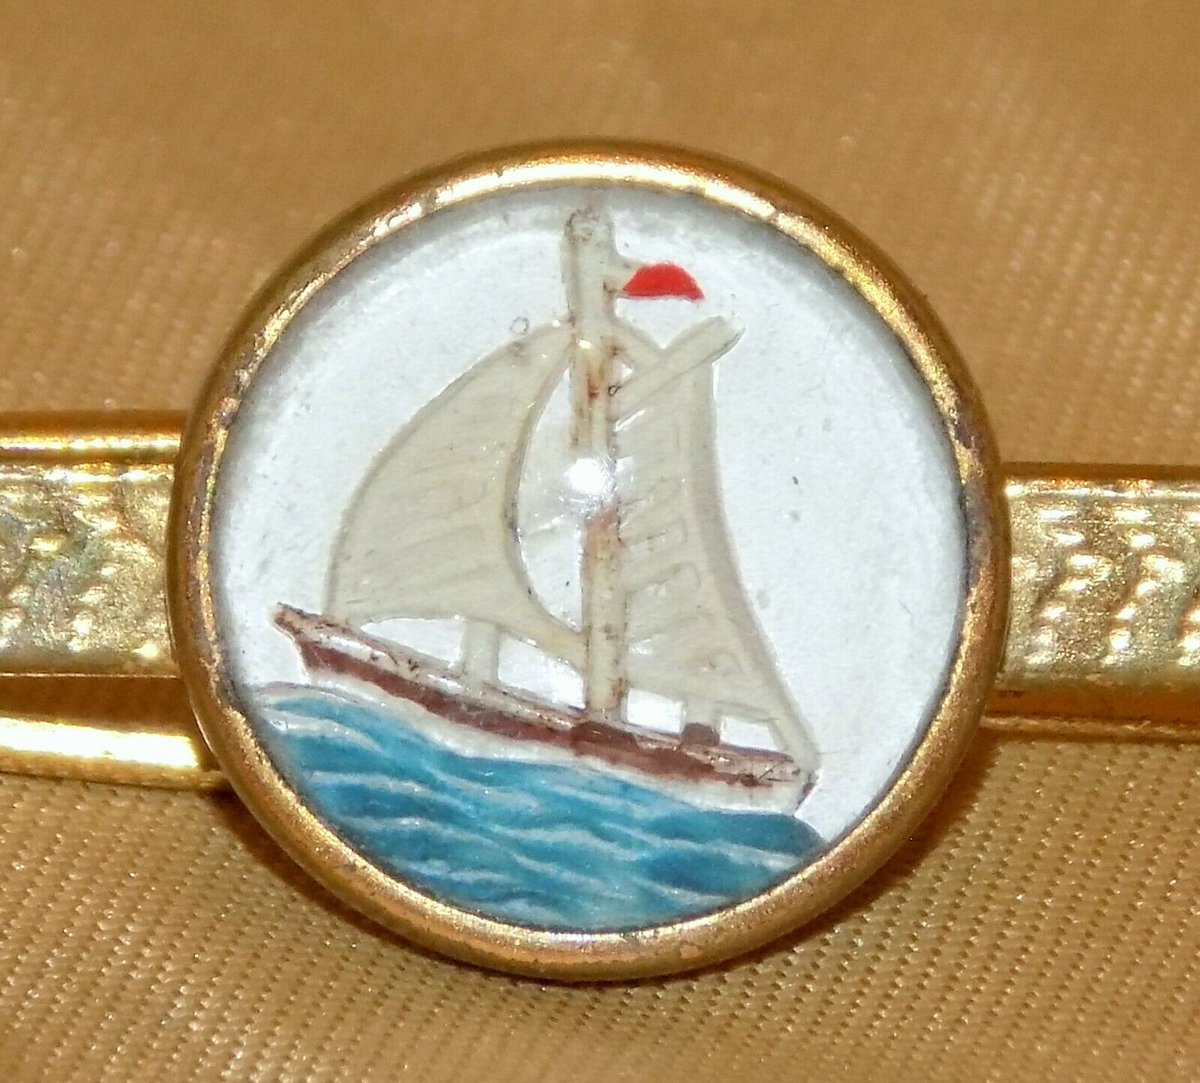 #Antiques #Militaria #Collectables #Jewellery #Auction - #Vintage Yellow Metal Reverse Painted Essex Crystal Yacht Gents Tie Bar Clasp https://www.ebay.co.uk/itm/123845969706…